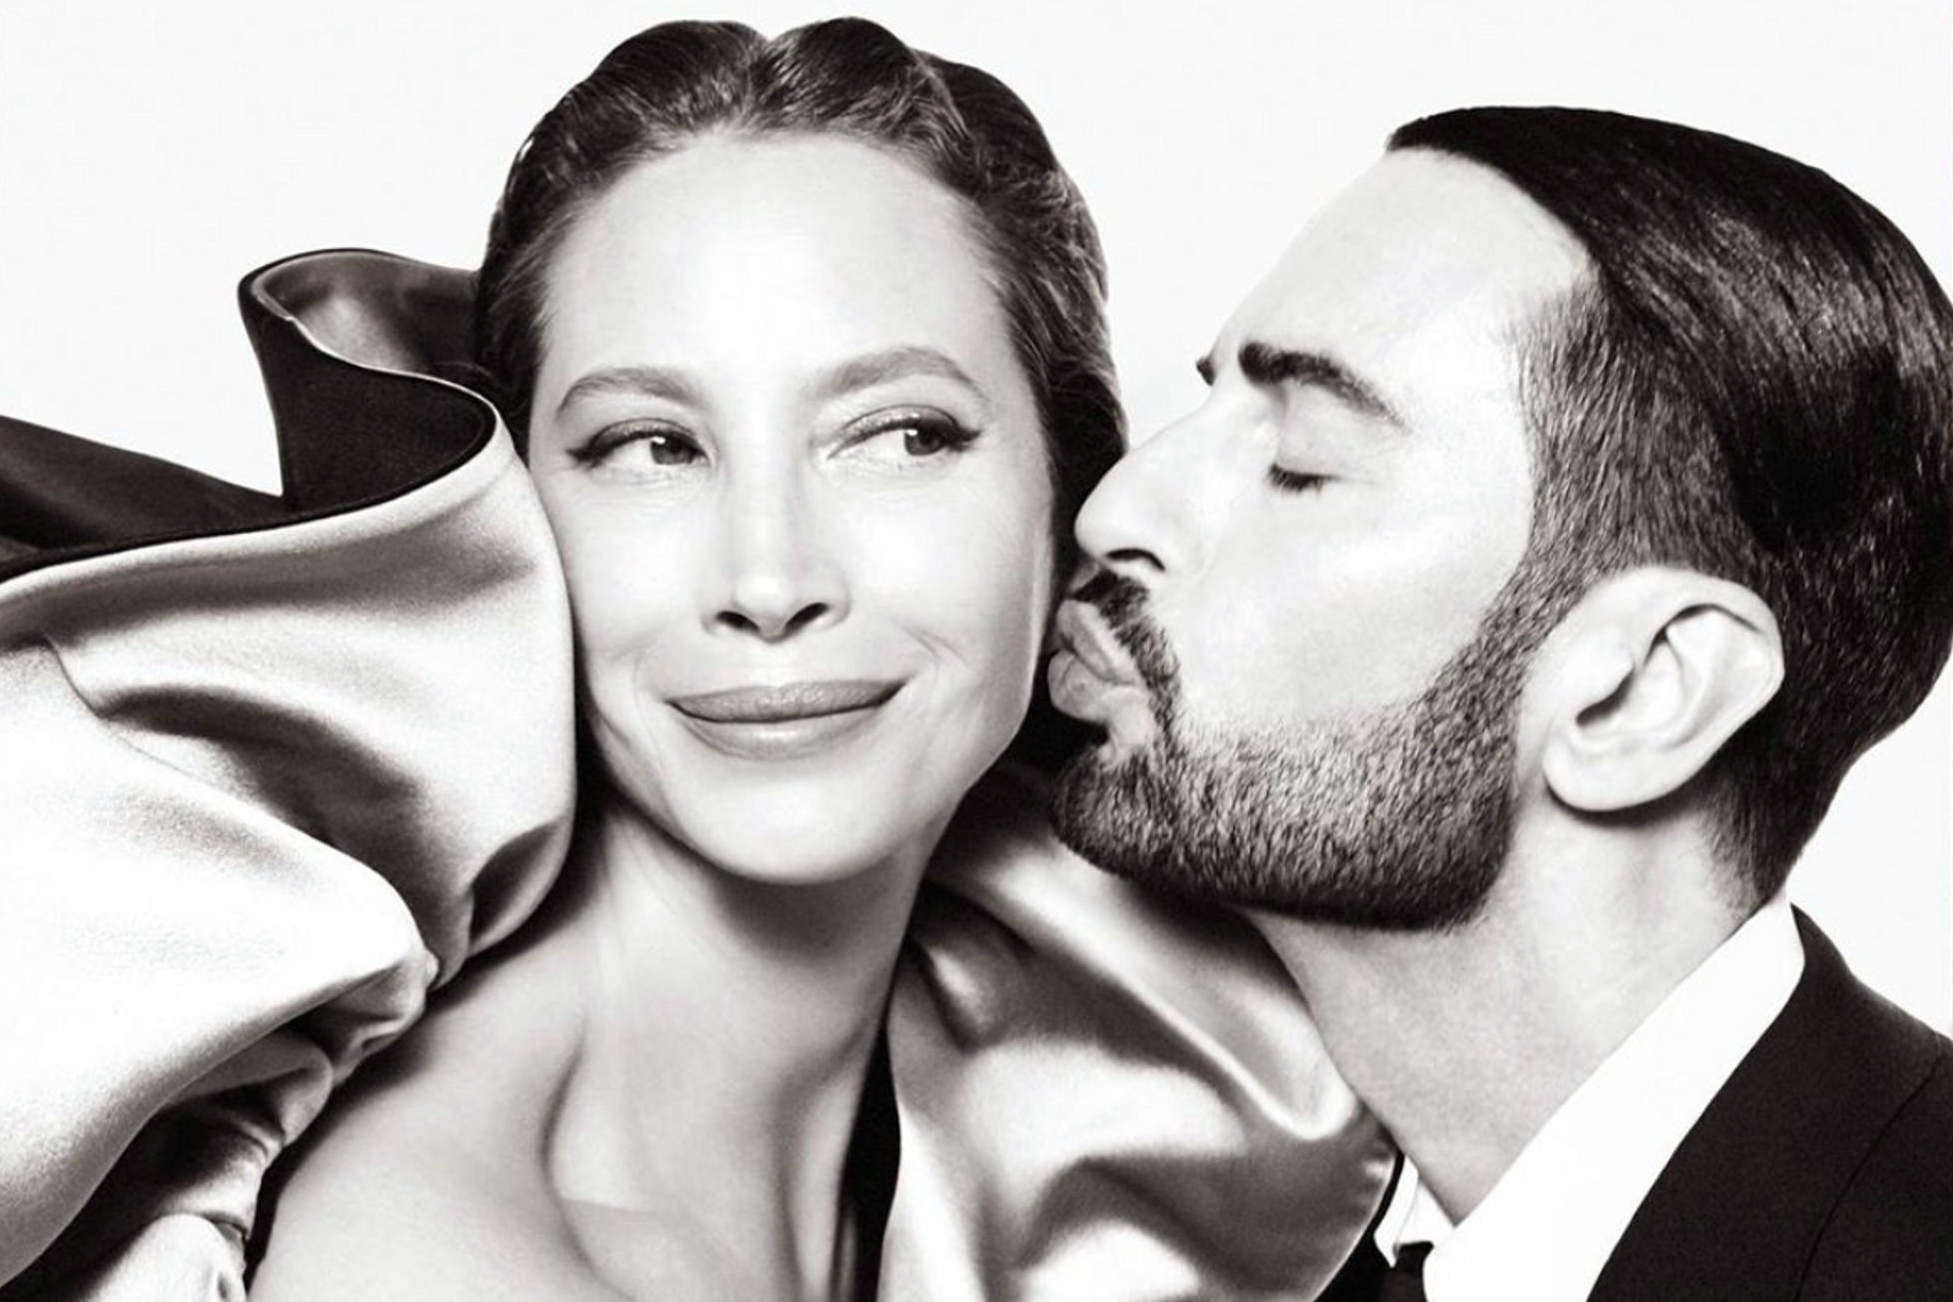 Marc Jacobs Teases Fall 2019 Ad Campaign with Christy Turlington & Himself by Steven Meisel